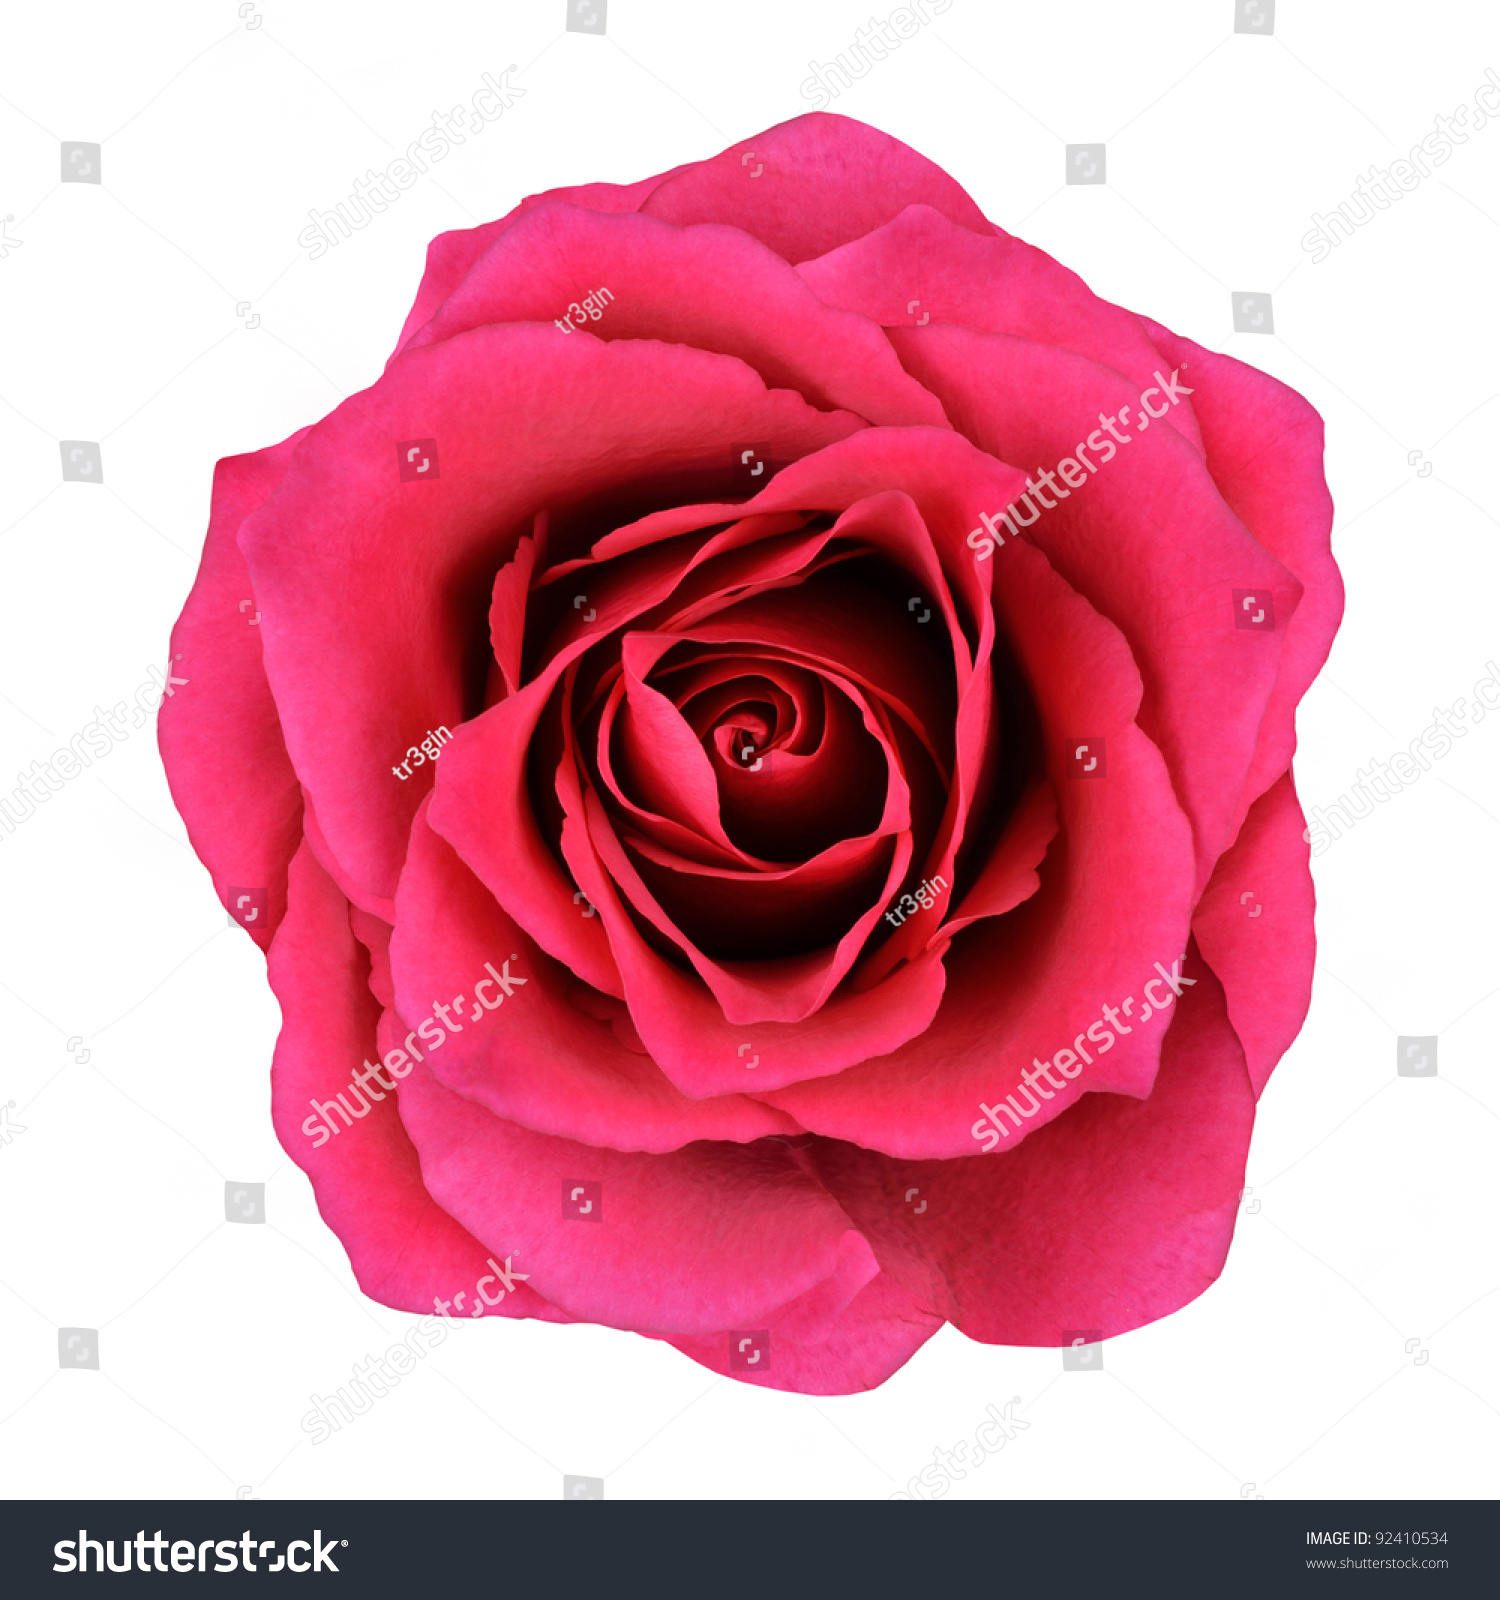 Red rose flower isolated on white background top view on beautiful